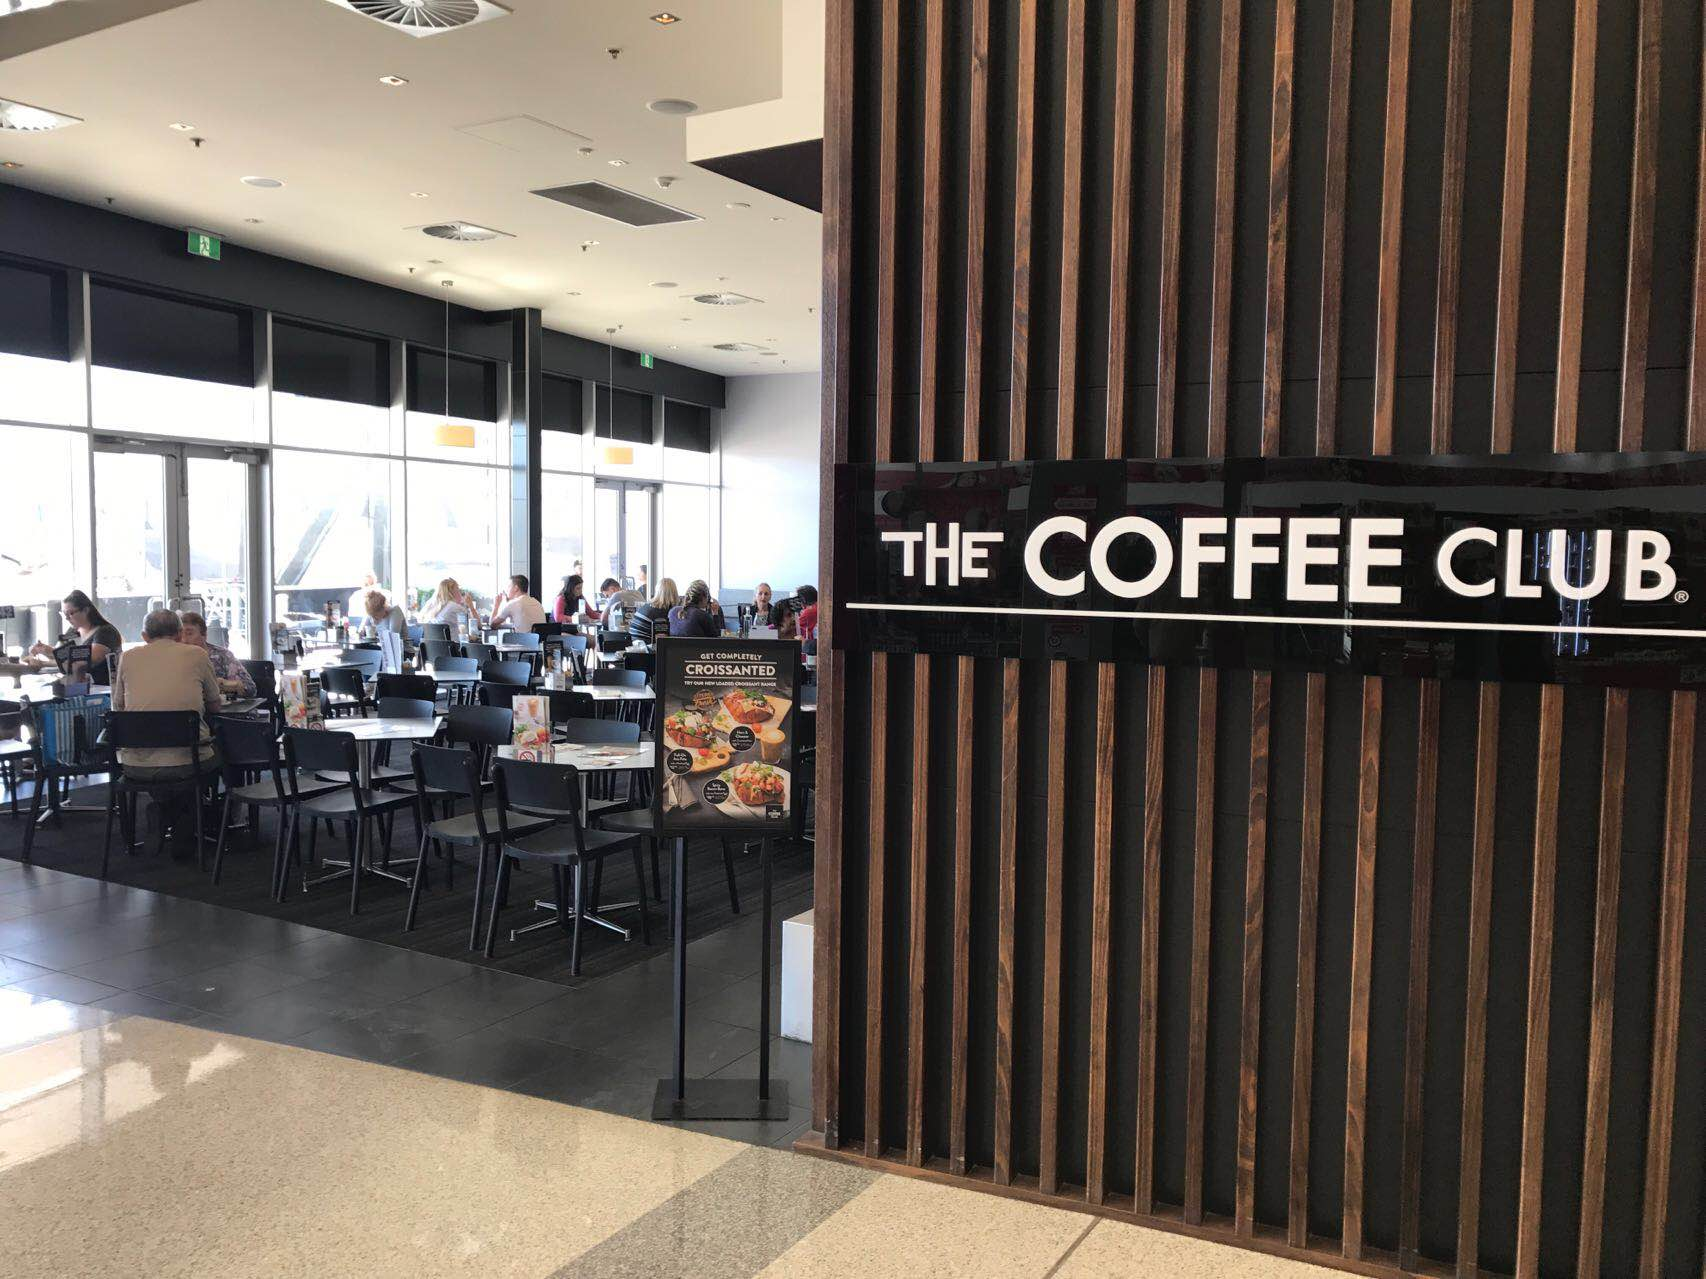 UNDER OFFER: Coffee Club North of River (Australia's leading Cafe / Restaurant )